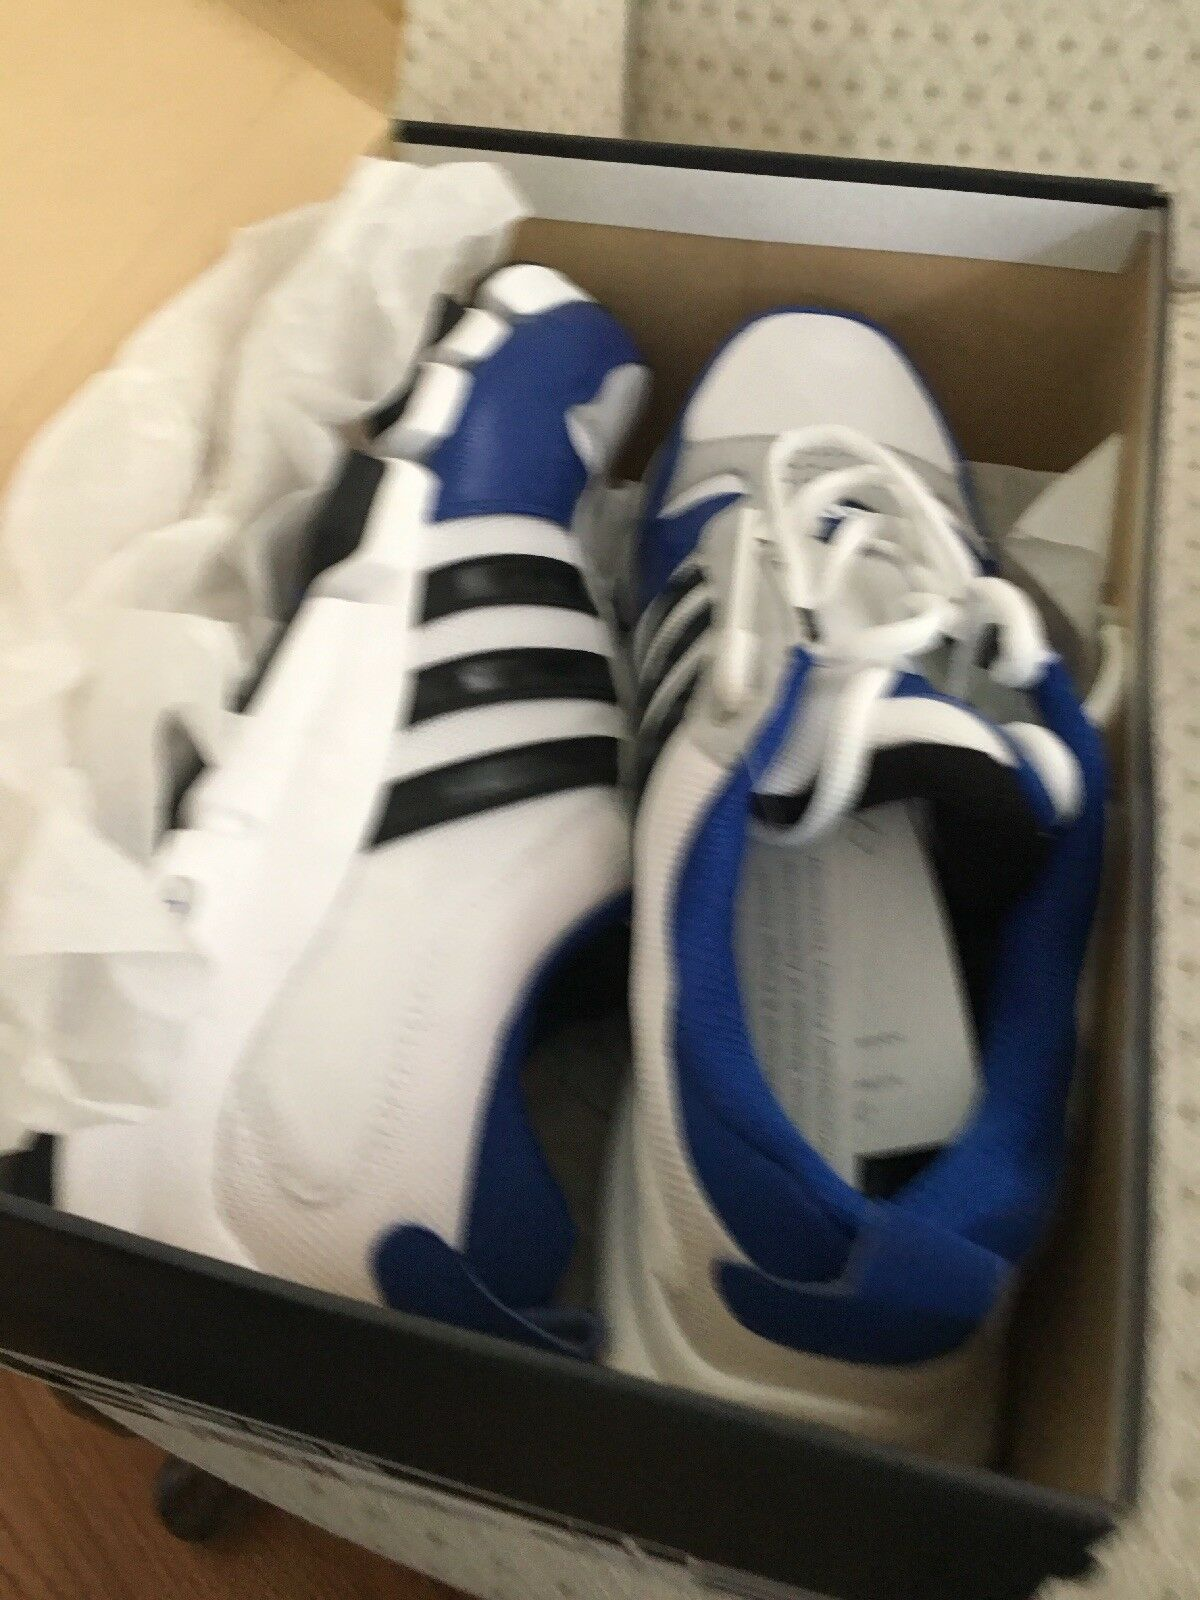 195,00 BRAND NEW Mens Adidas Plush Tr 6 Running Shoes Trail Size 9.5